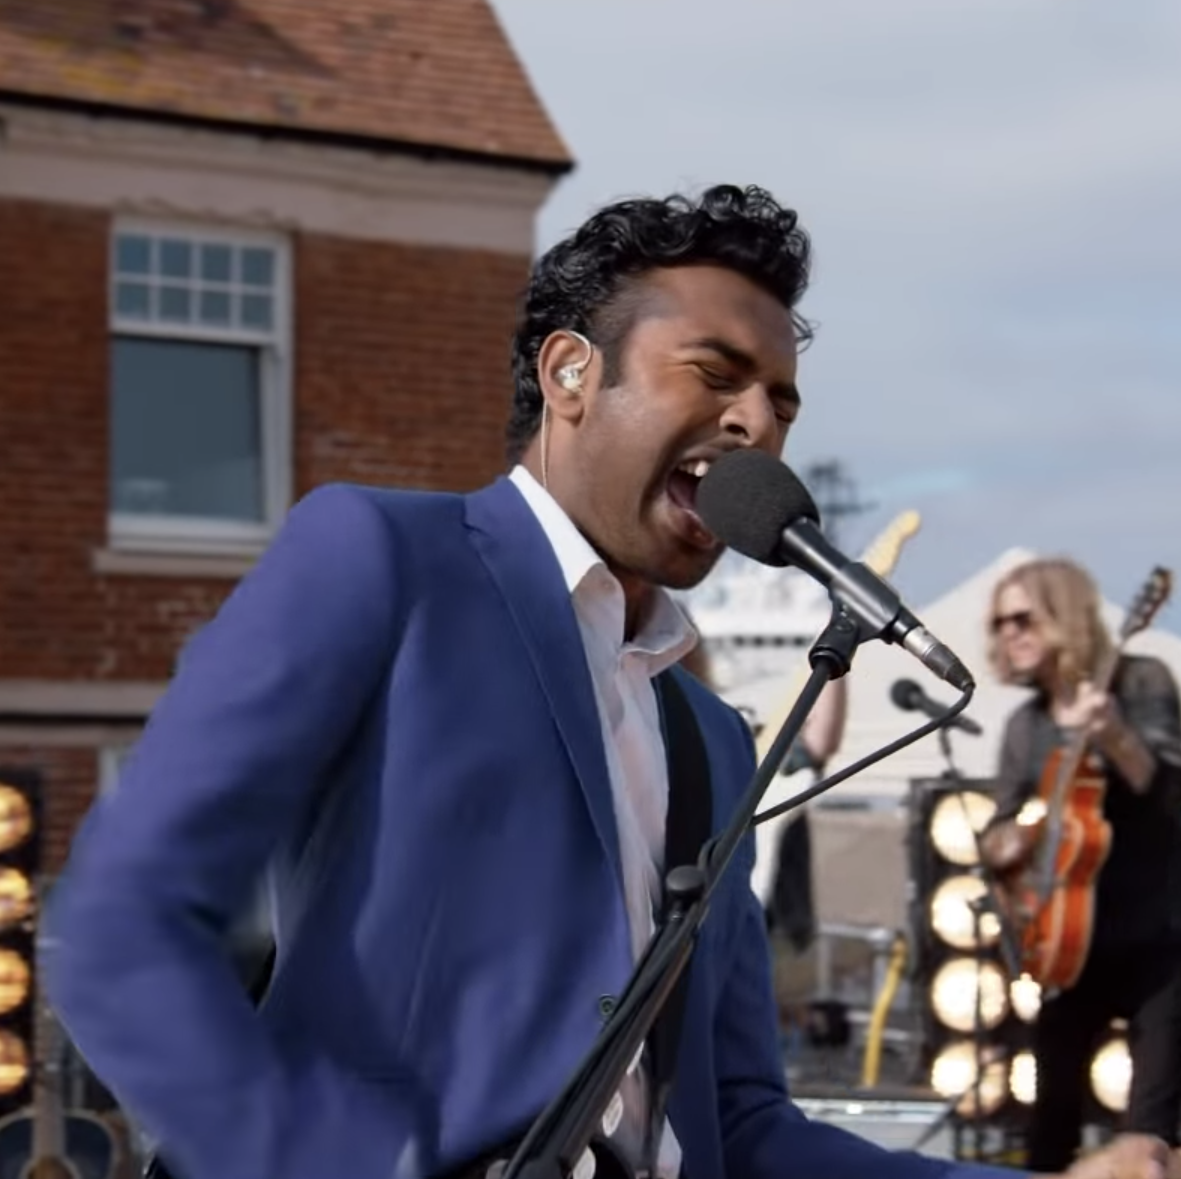 The Yesterday Trailer Imagines a World Without The Beatles